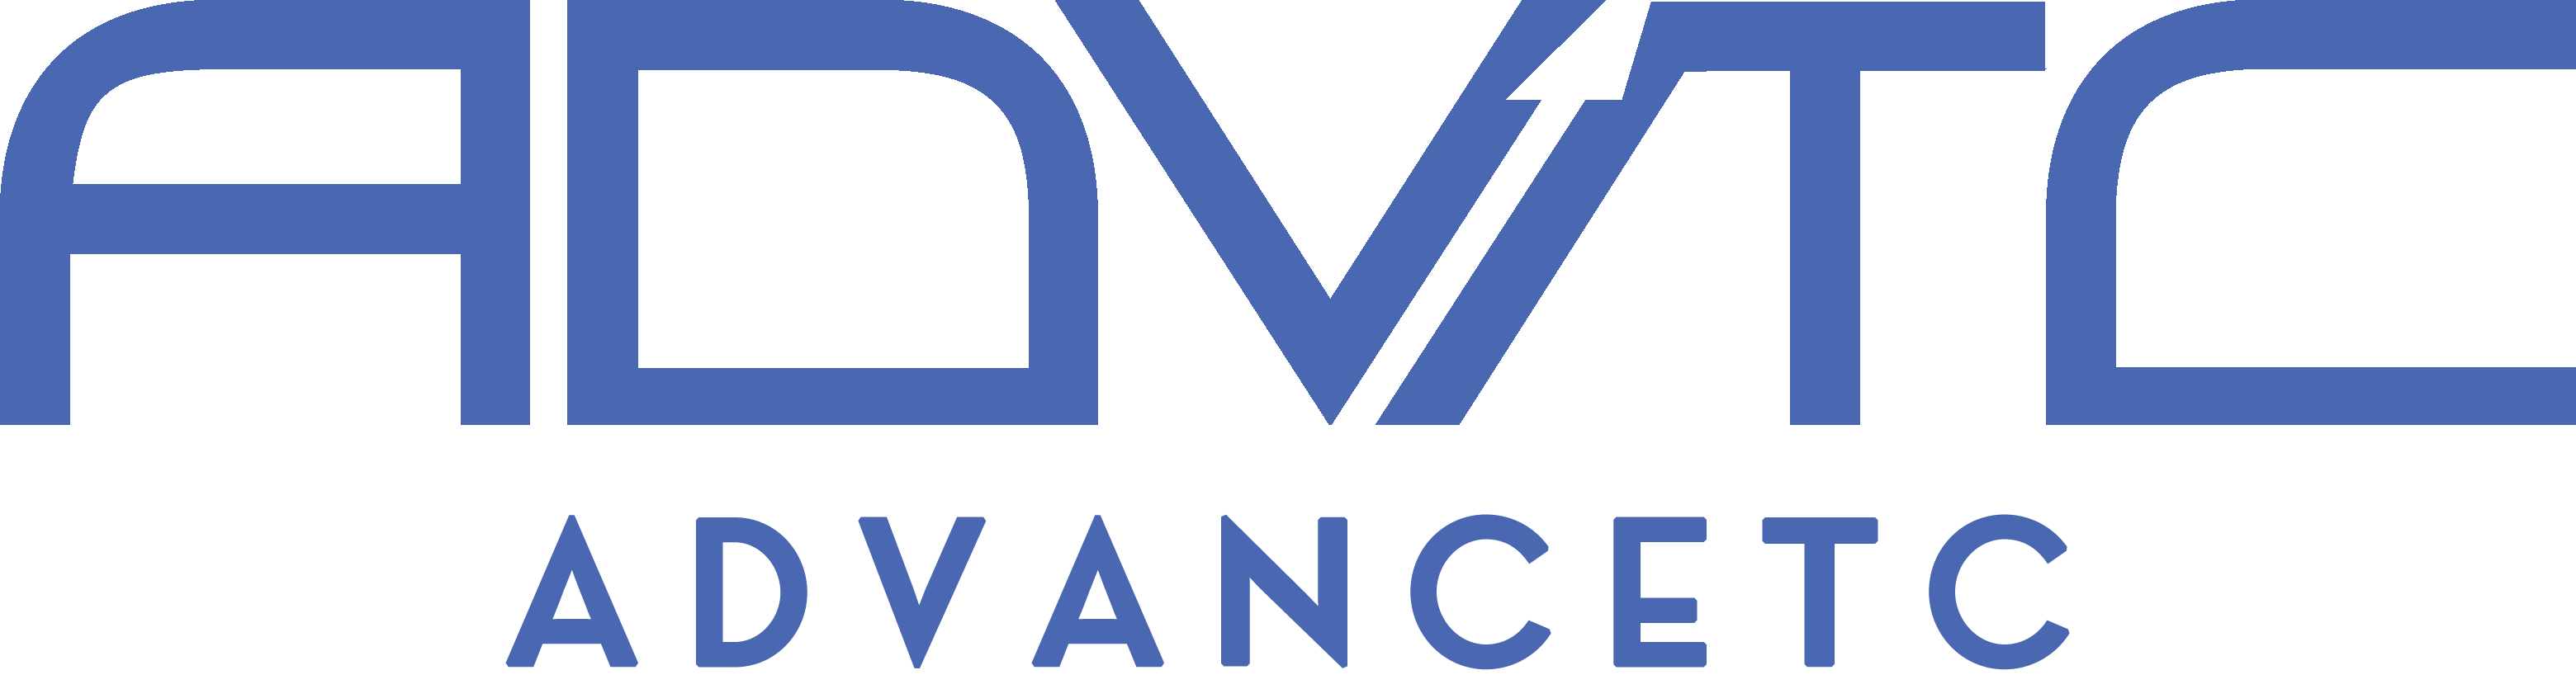 Developer of First Secure Messaging App Integrating Digital Mobile Radio and Satellite Communications: AdvanceTC (OTCQB: ATCLF)